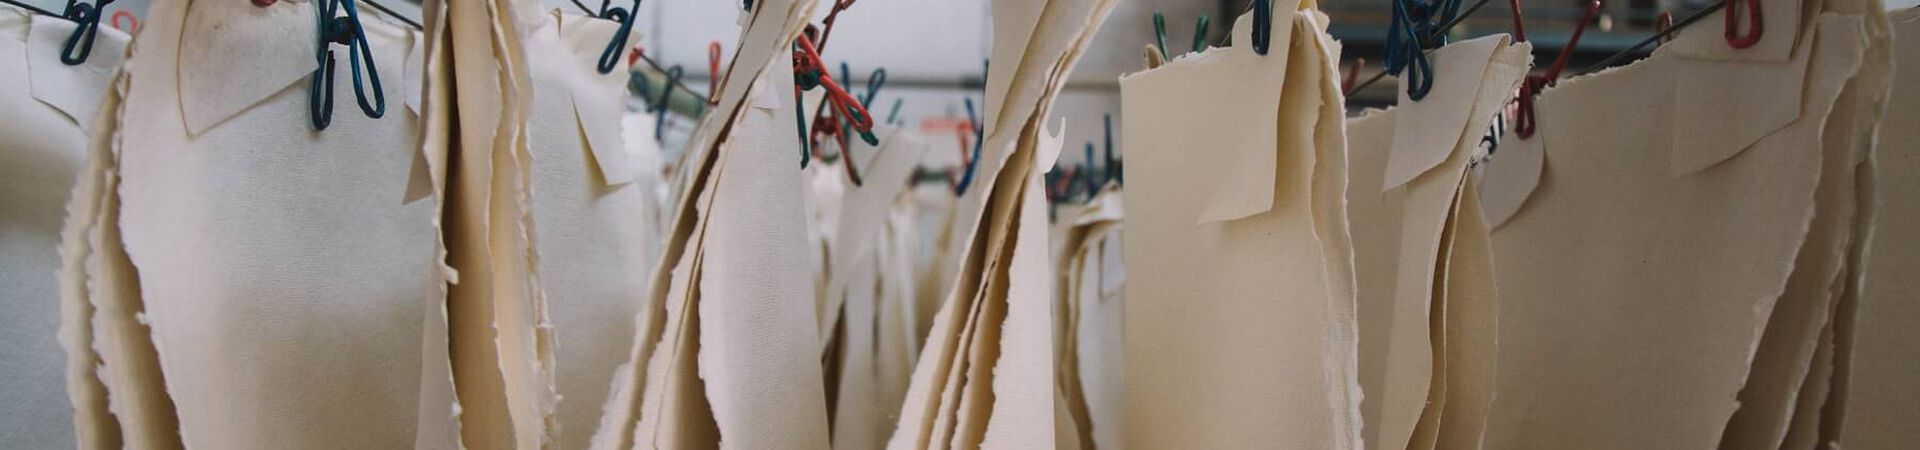 Banner - Gifts Wrapped Up with Love: Khadi Papers